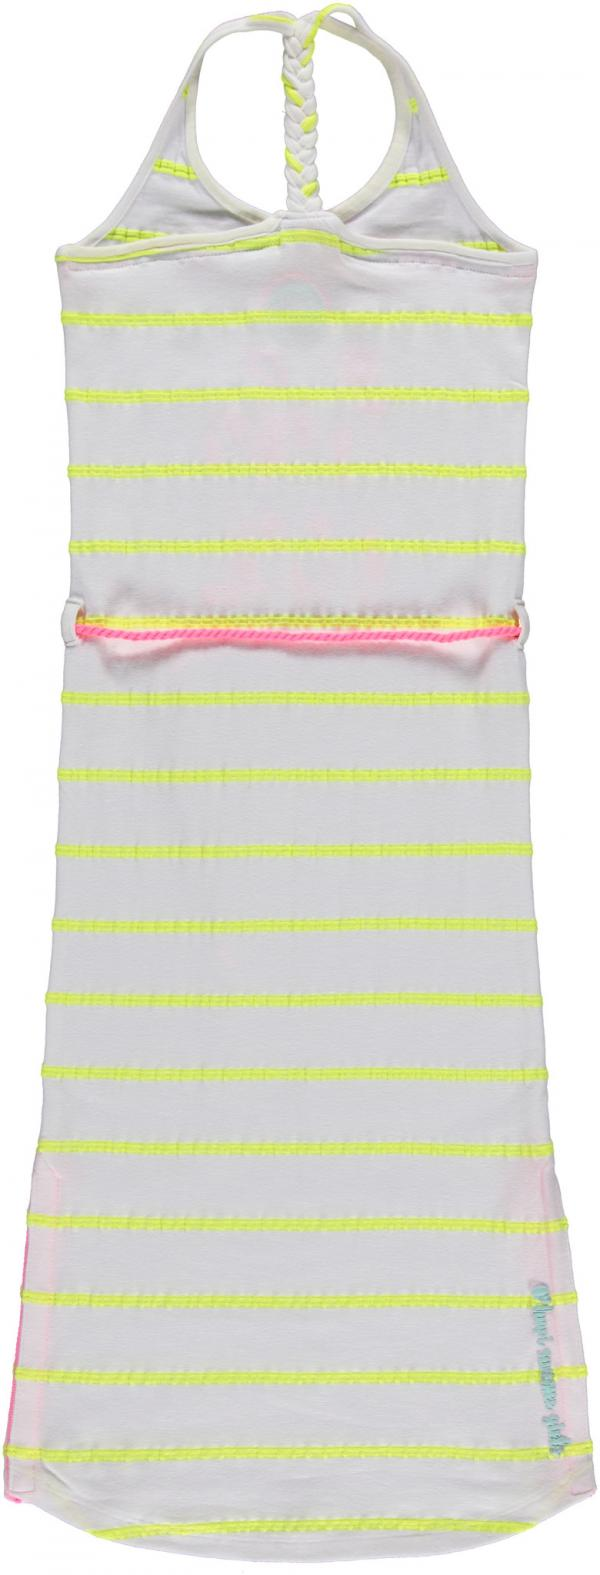 9713Jurk_Karissa_Yellow_Stripe